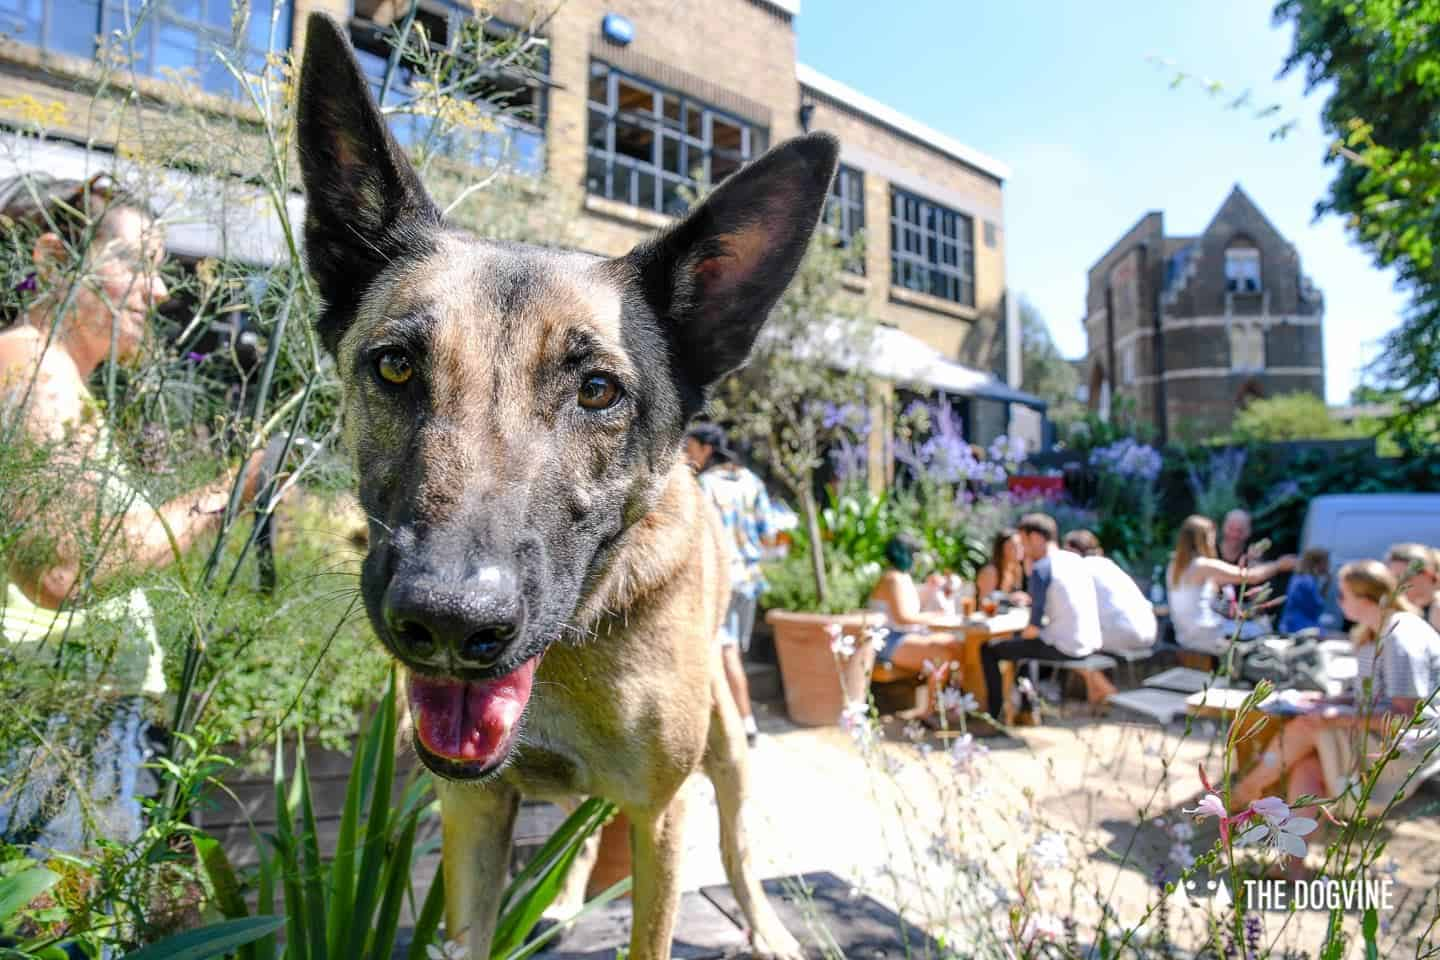 My Dog Friendly London By Lyra the Malinois - Dog Friendly Dalston and Hackney 7